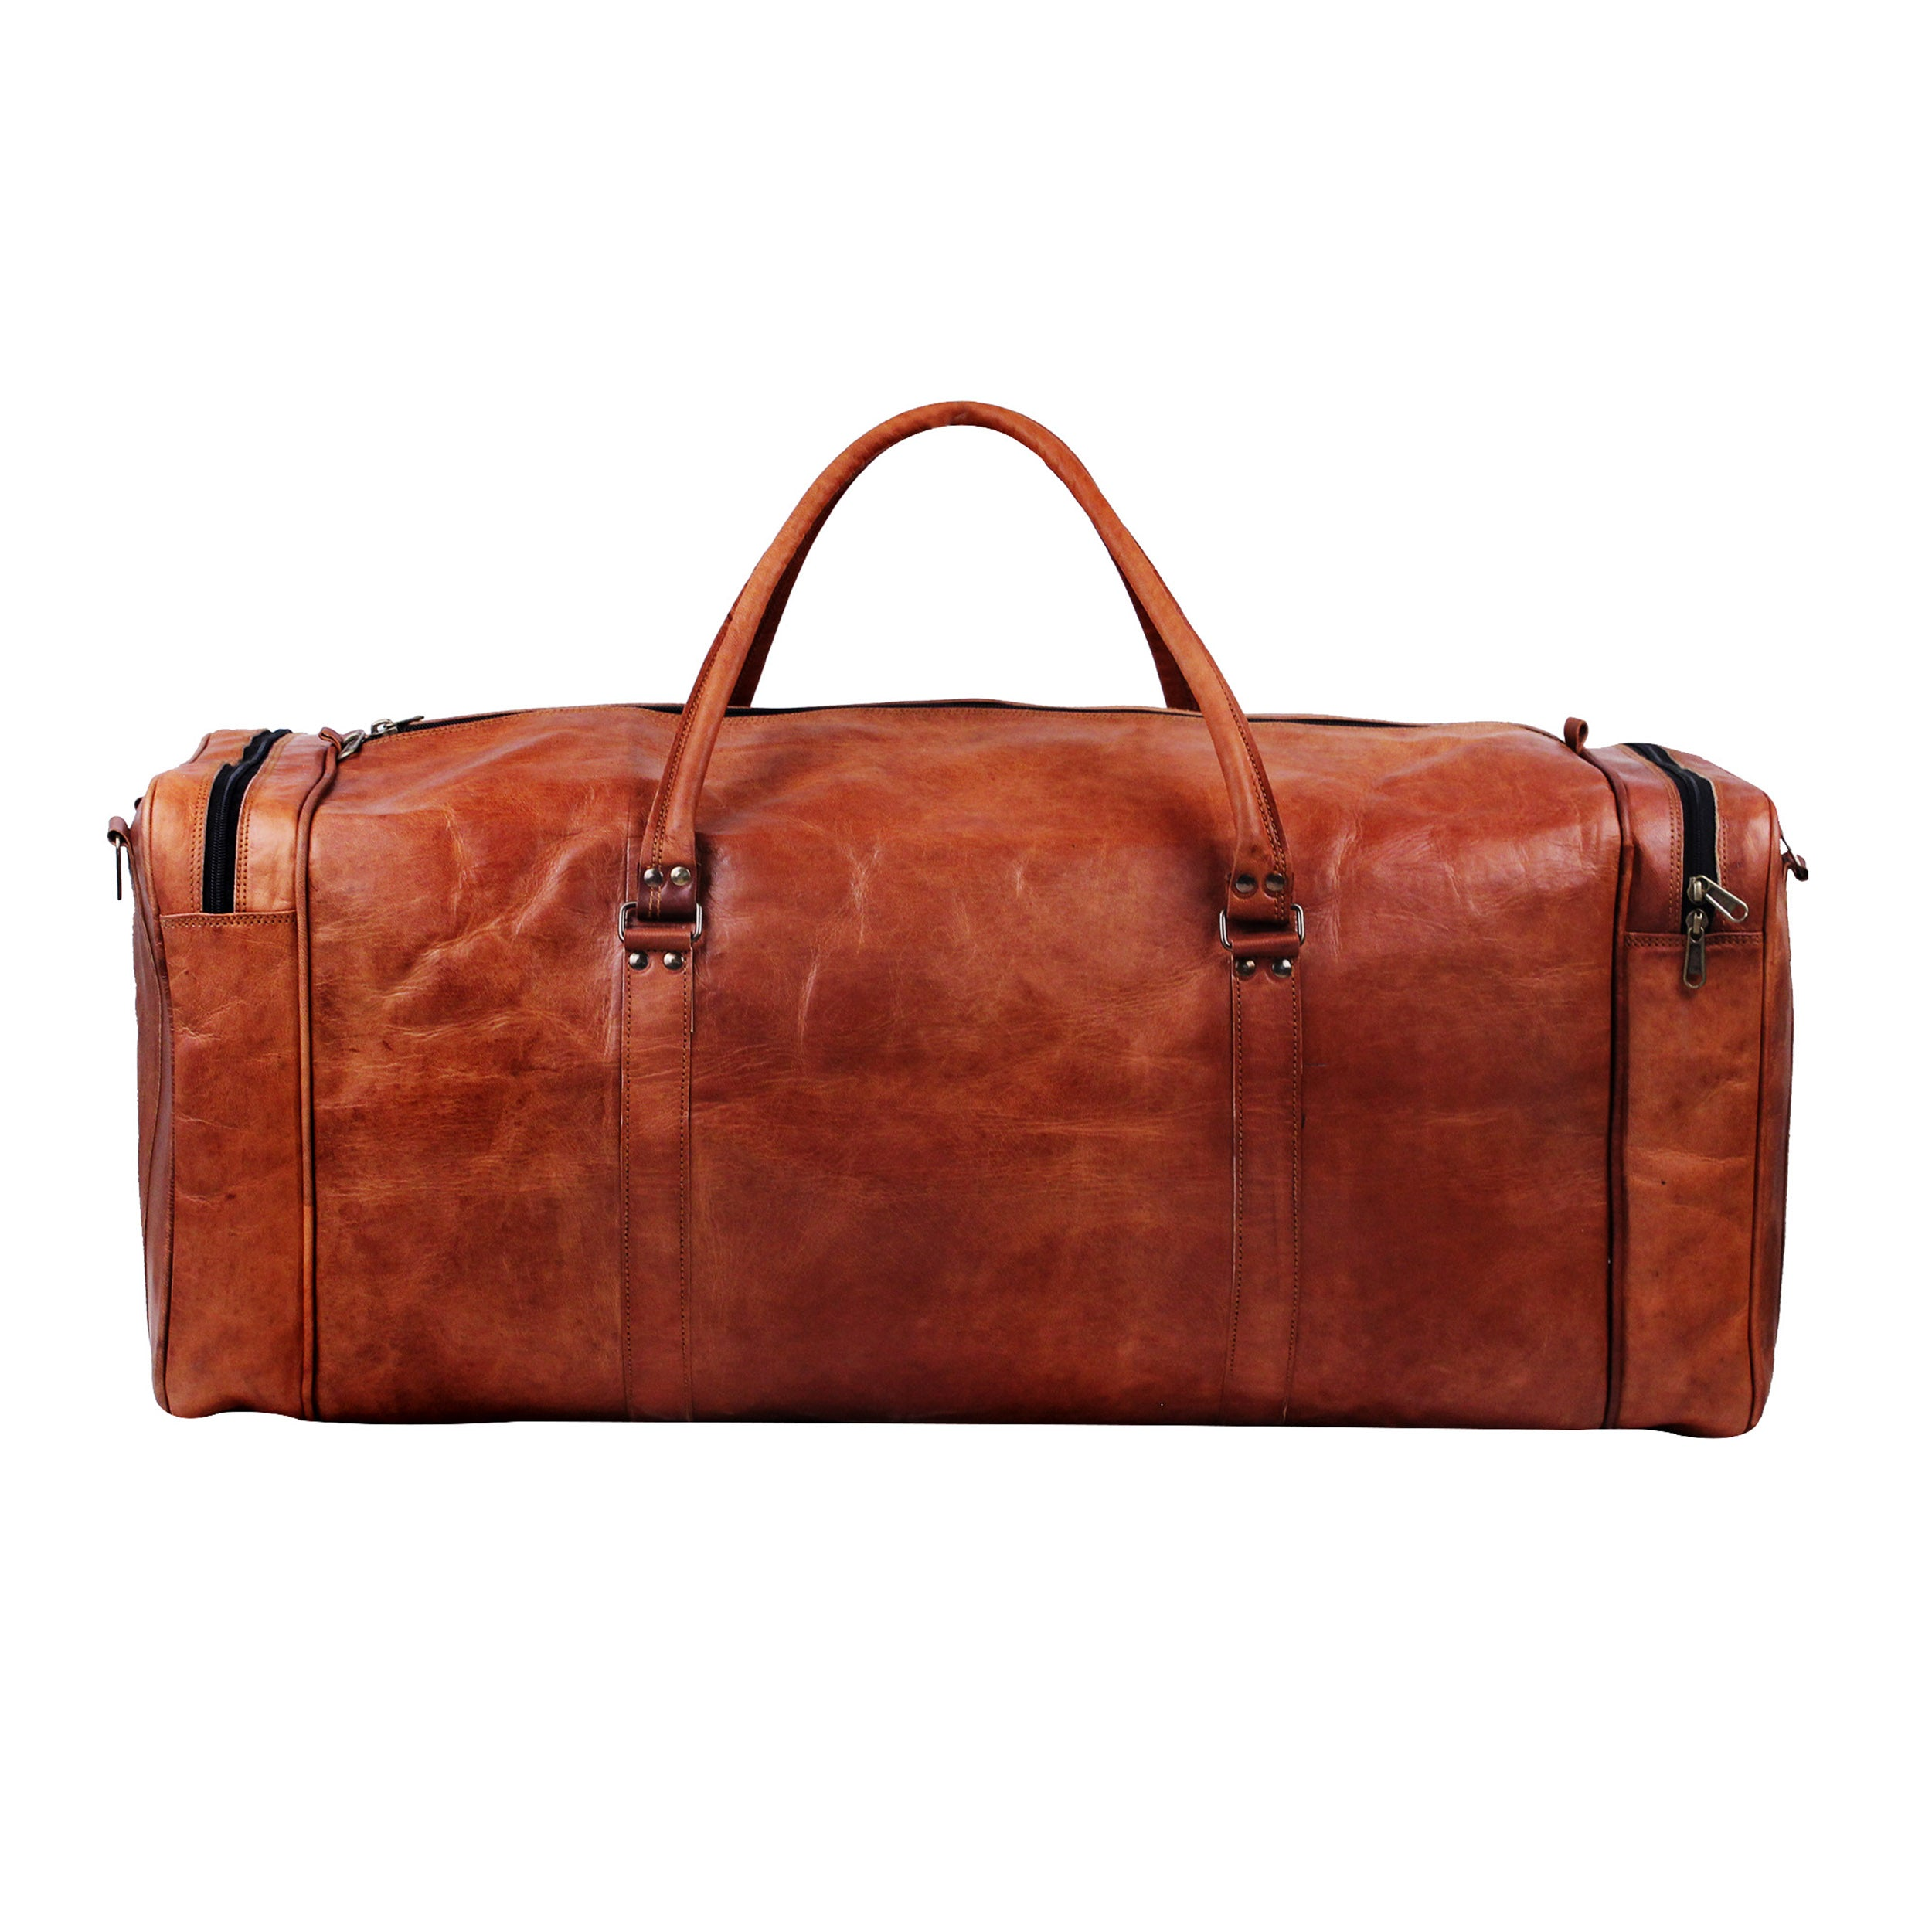 Best leather duffle bag by Hulsh - Brown